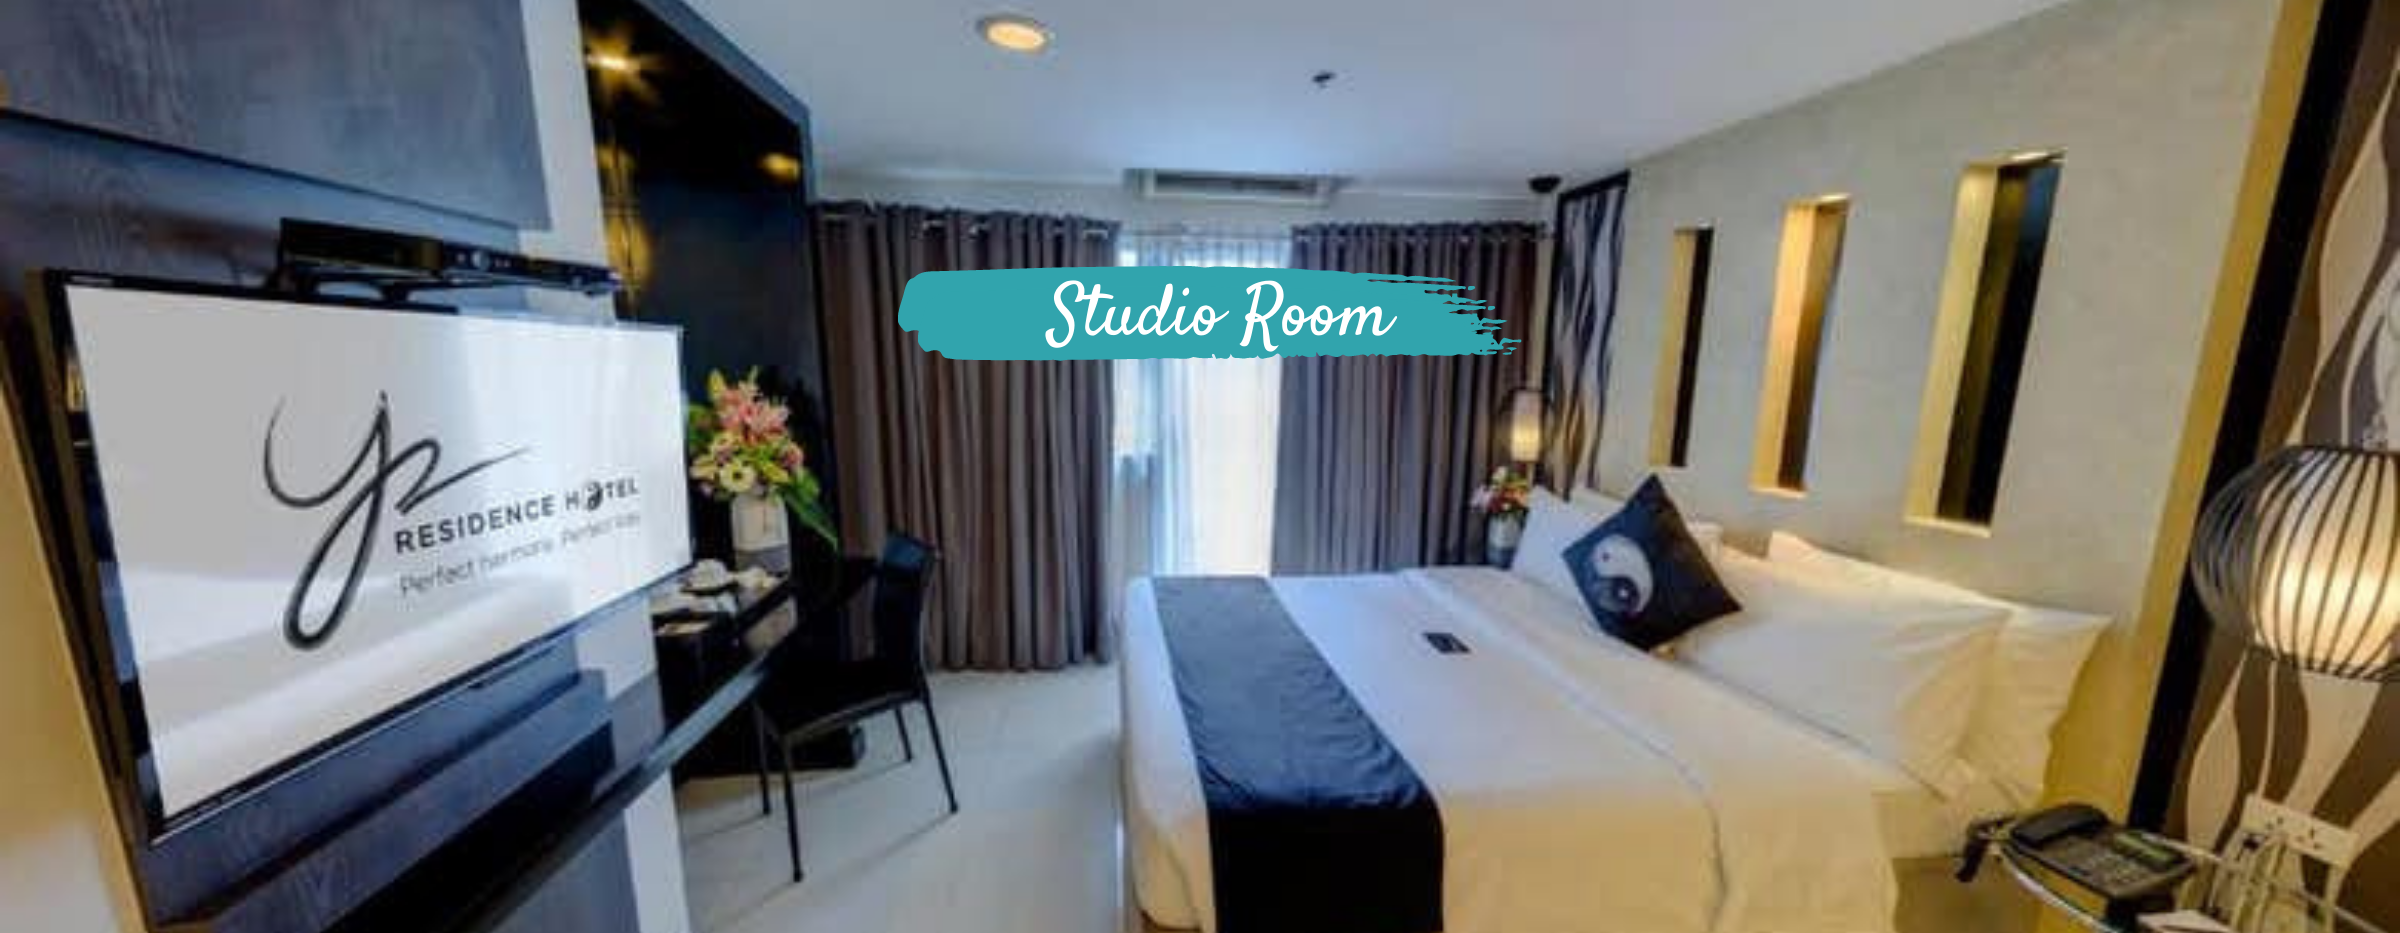 Y2 Residence - Studio Room   Vancouver to MNL Philippine Airlines + Hotel Quarantine